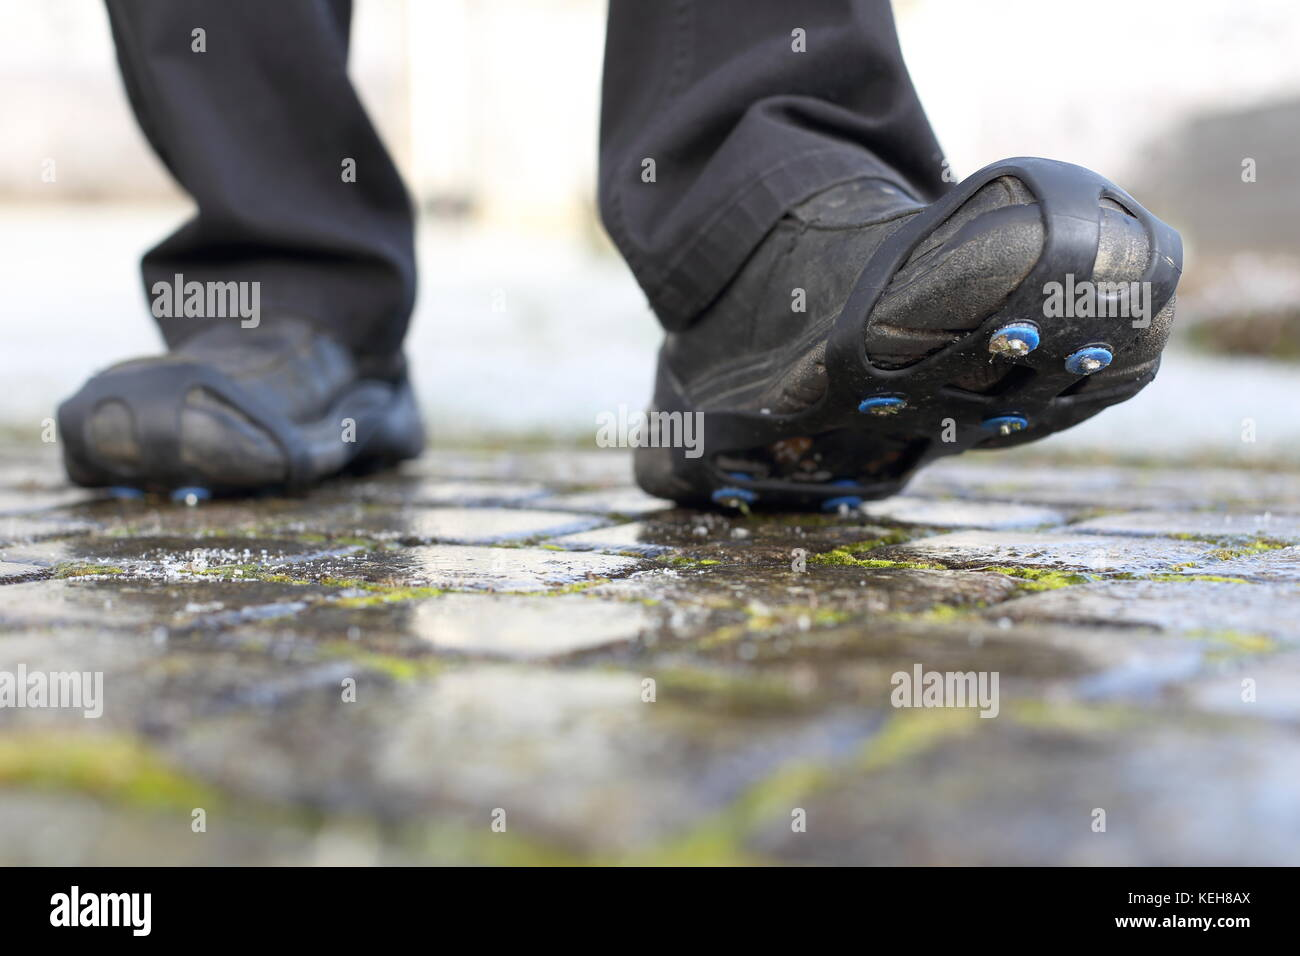 Pair of Shoe spikes snow chains an a icy road in winter - Stock Image